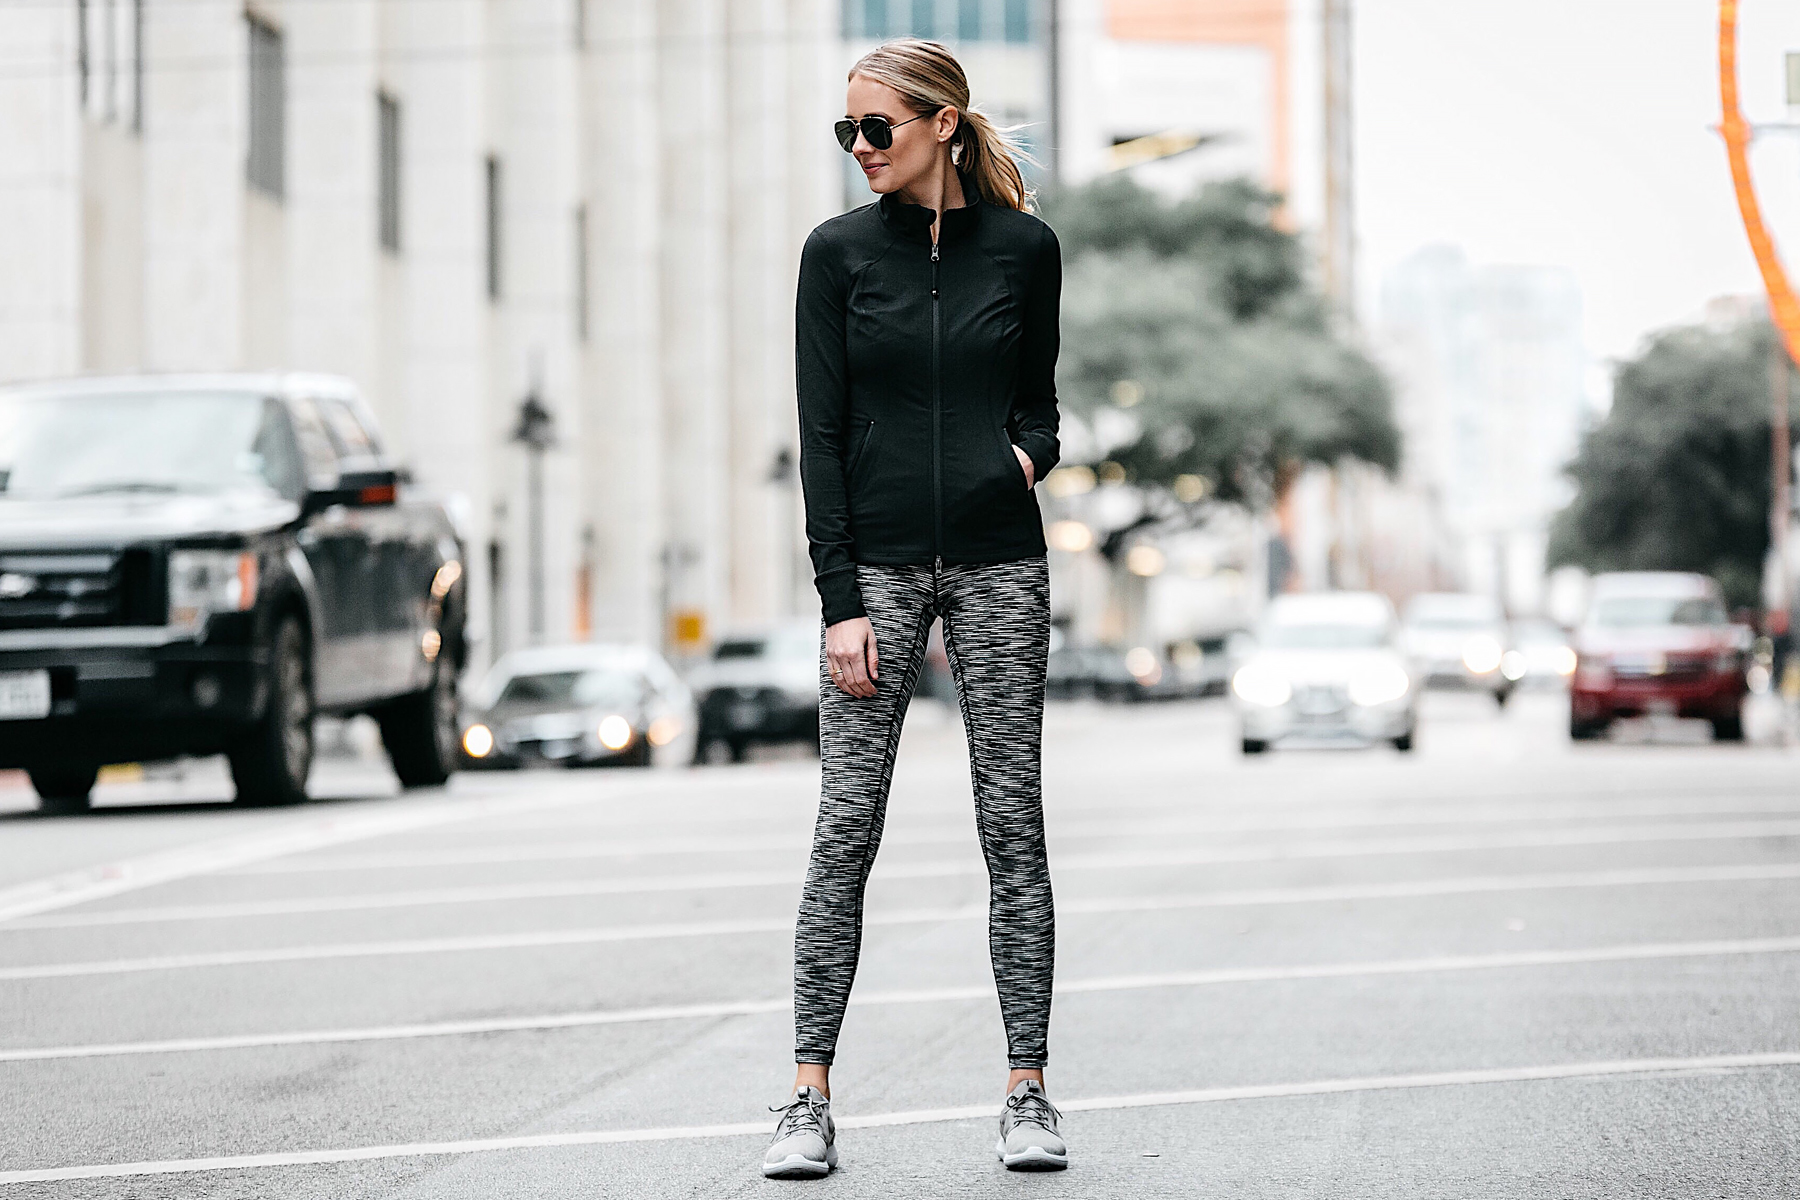 Blonde Woman Wearing Zella Black Zip Up Jacket Zella Black White Leggings Nike Roshe Fly Knit Grey Sneakers Workout Outfit Activewear Fashion Jackson Dallas Blogger Fashion Blogger Street Style Workout Outfit Activewear